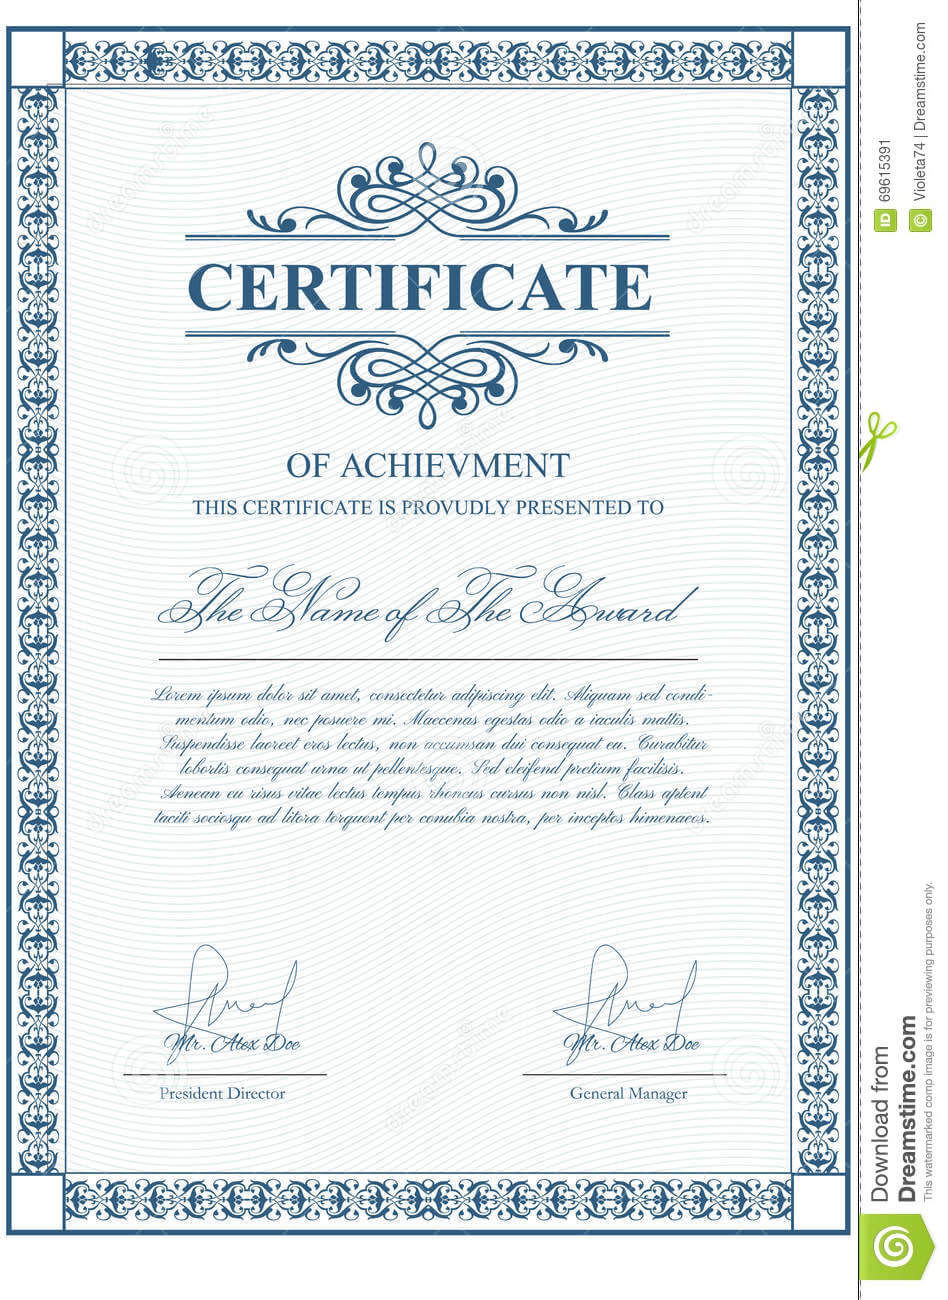 Certificate Template With Guilloche Elements. Stock Vector Inside Validation Certificate Template